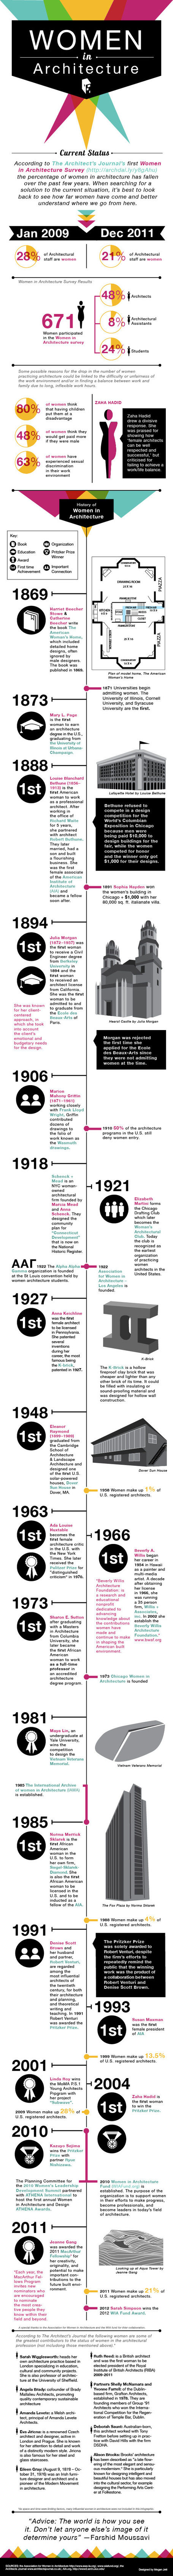 Infographic: Women in Architecture | D_sign | Scoop.it